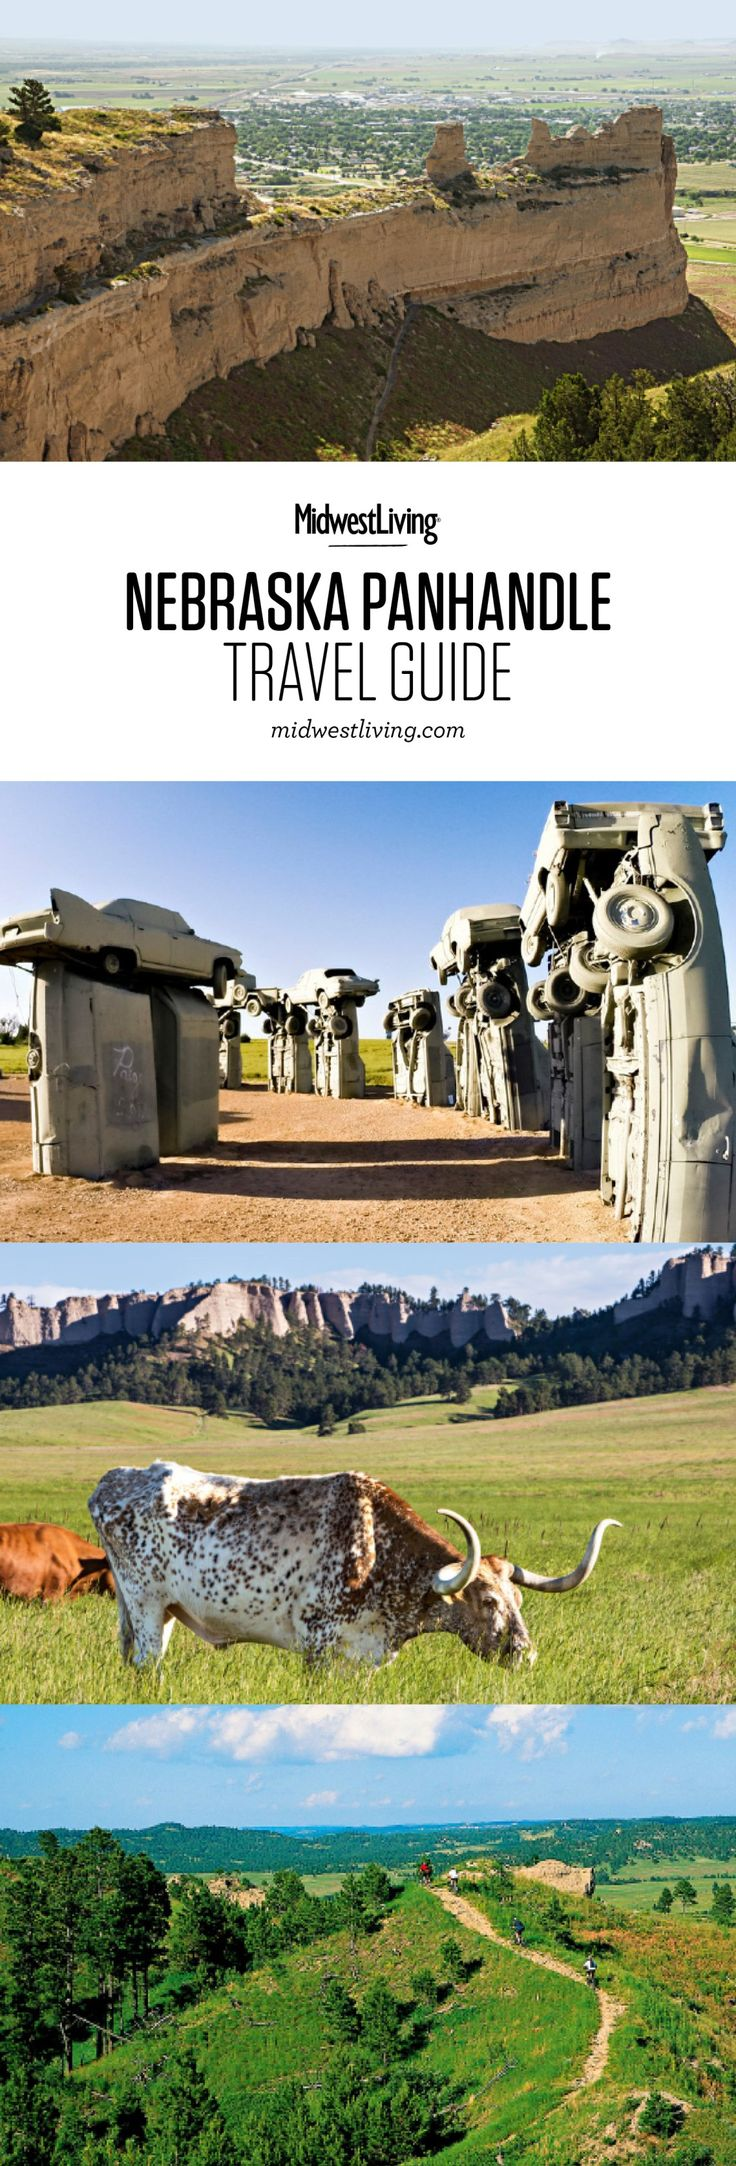 Badlands, big skies and a surprising spread of pine forests draw visitors through the Sandhills to the panhandle in northwestern Nebraska. Things to do in Nebraska's Wild West include visiting Fort Robinson State Park, Toadstool Geologic Park and Chadron State Park.